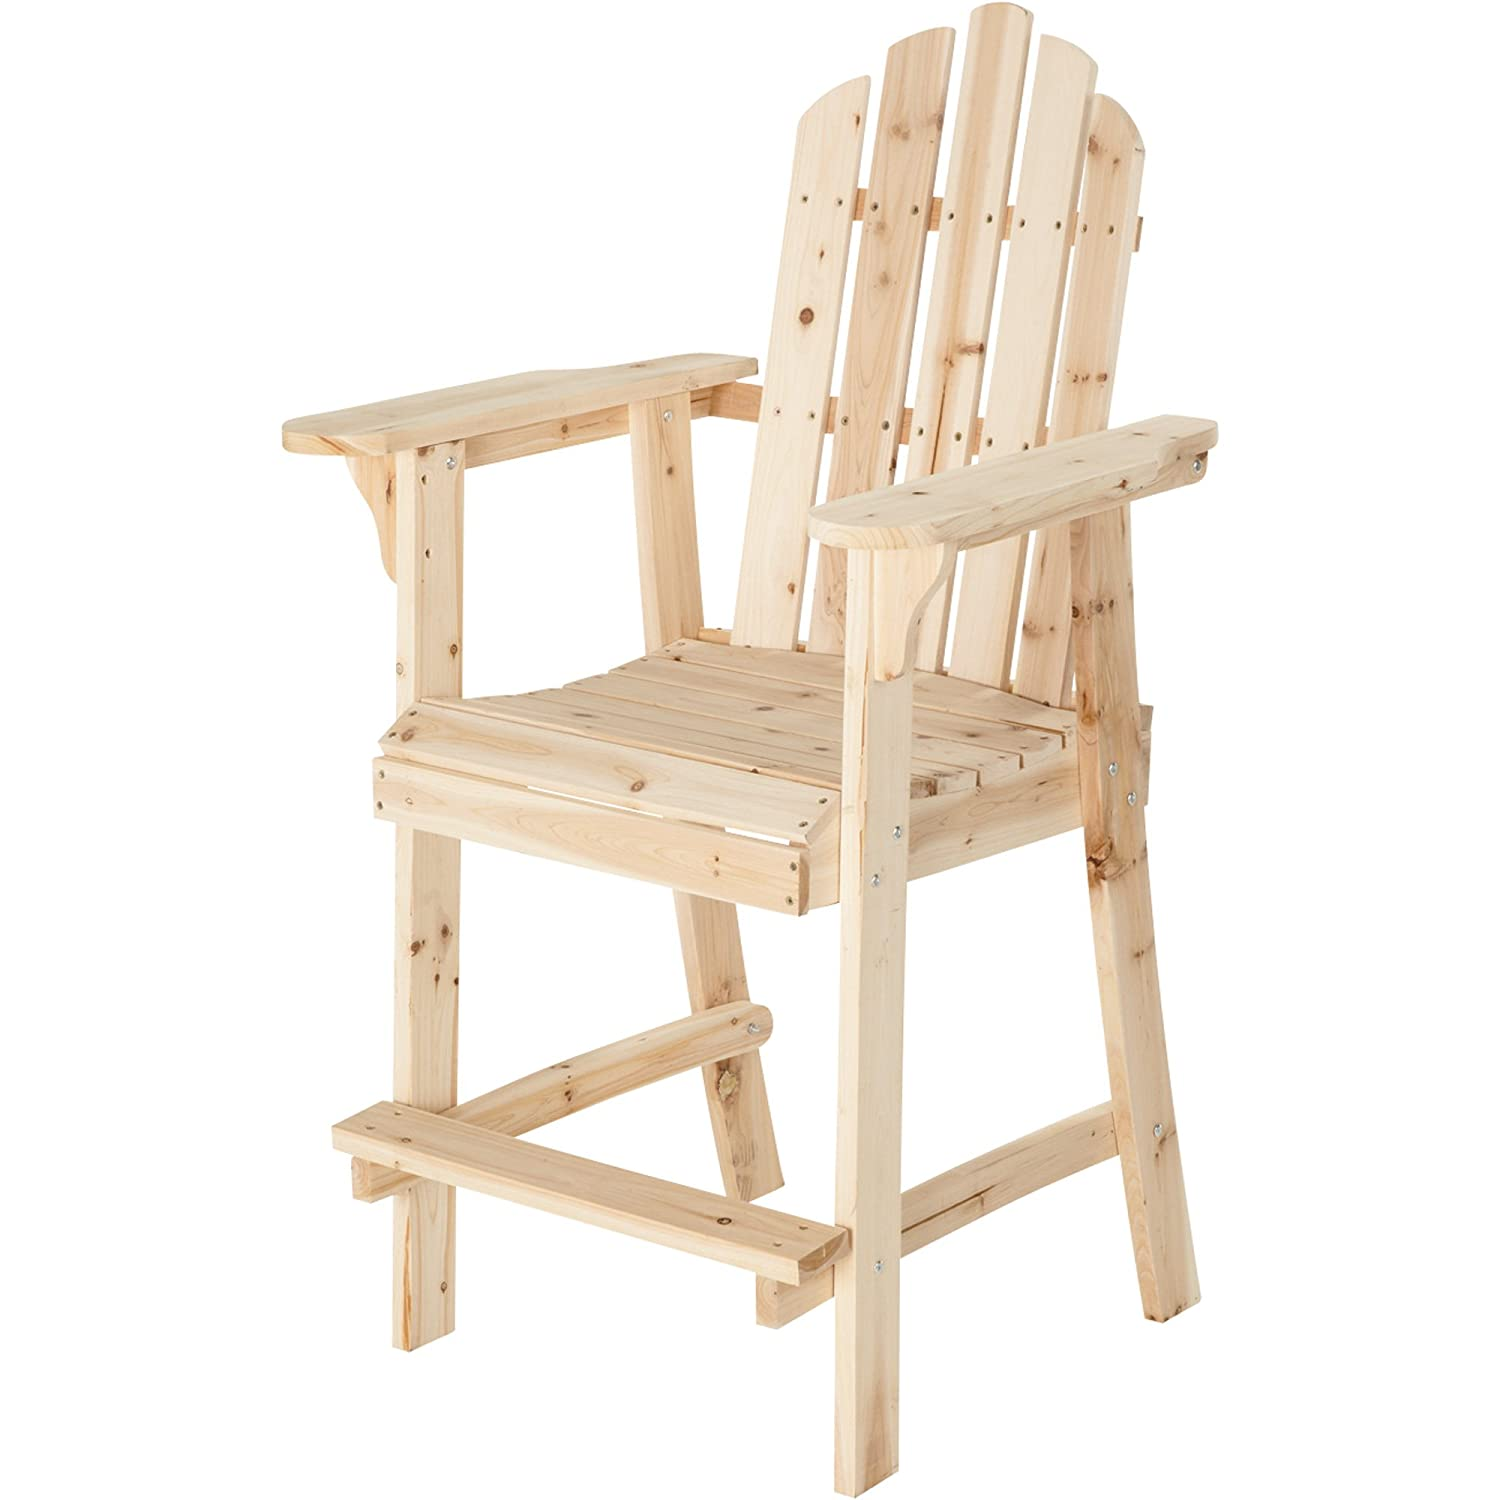 Perfect Amazon.com : Tall Unfinished Fir Wood Adirondack Chair : Bar Height Adirondack  Chairs : Garden U0026 Outdoor